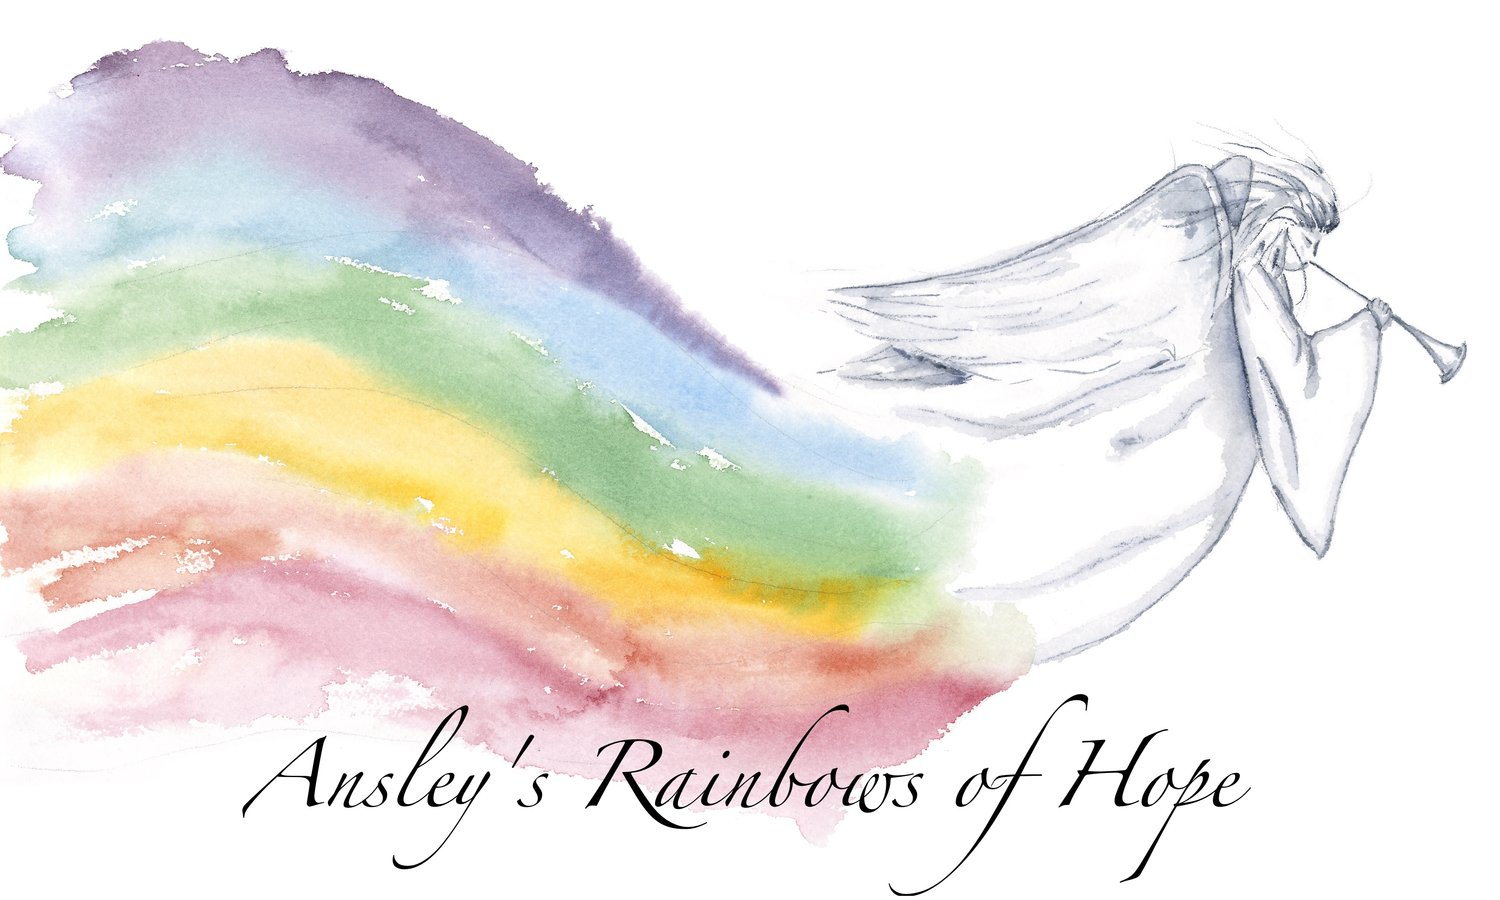 Ansley's Rainbows of Hope